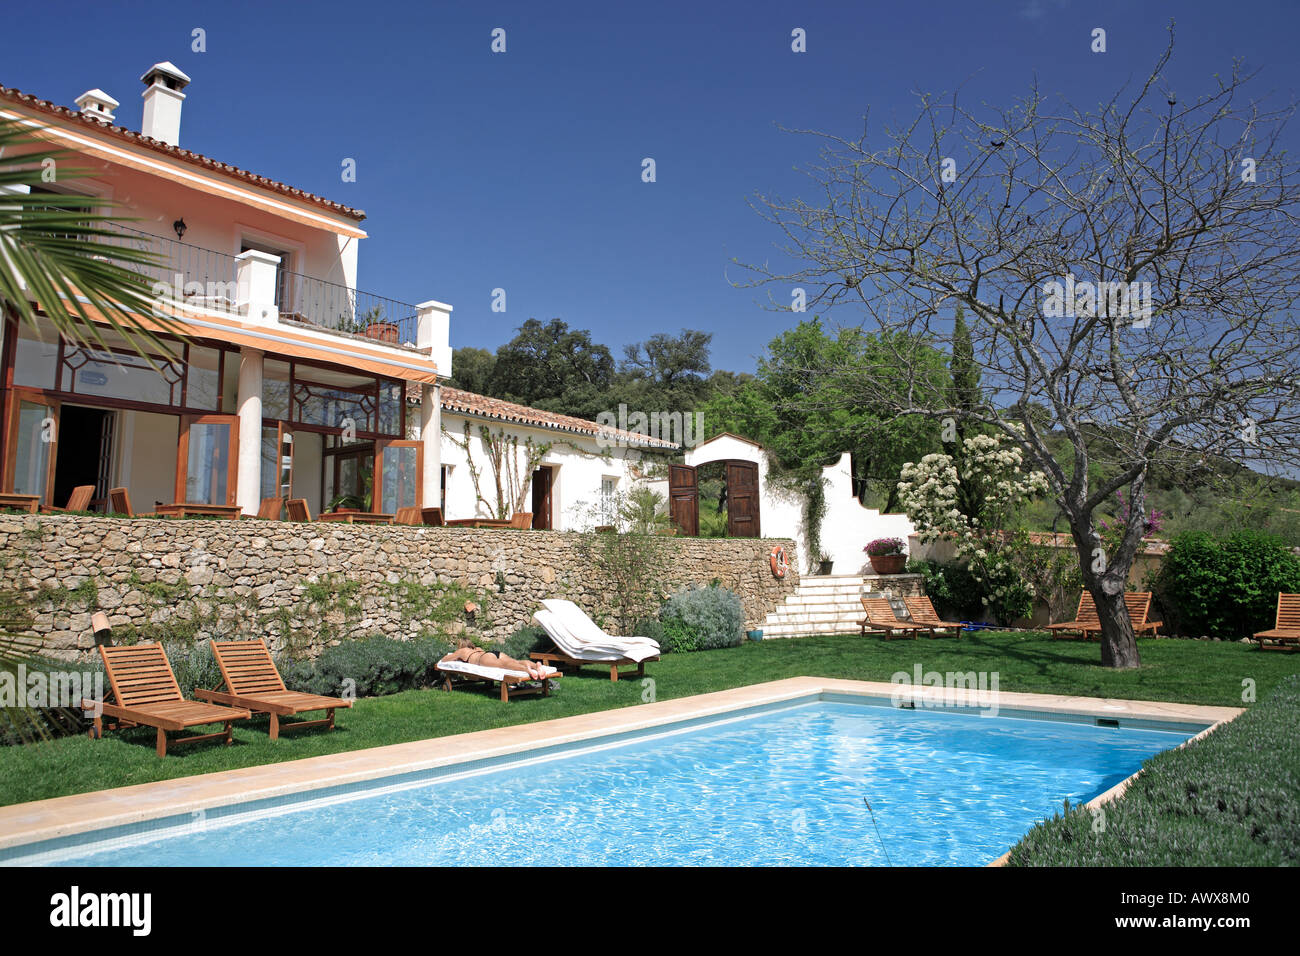 Large rustic hotel and swimming pool set in beautiful gardens in the Spanish countryside - Stock Image